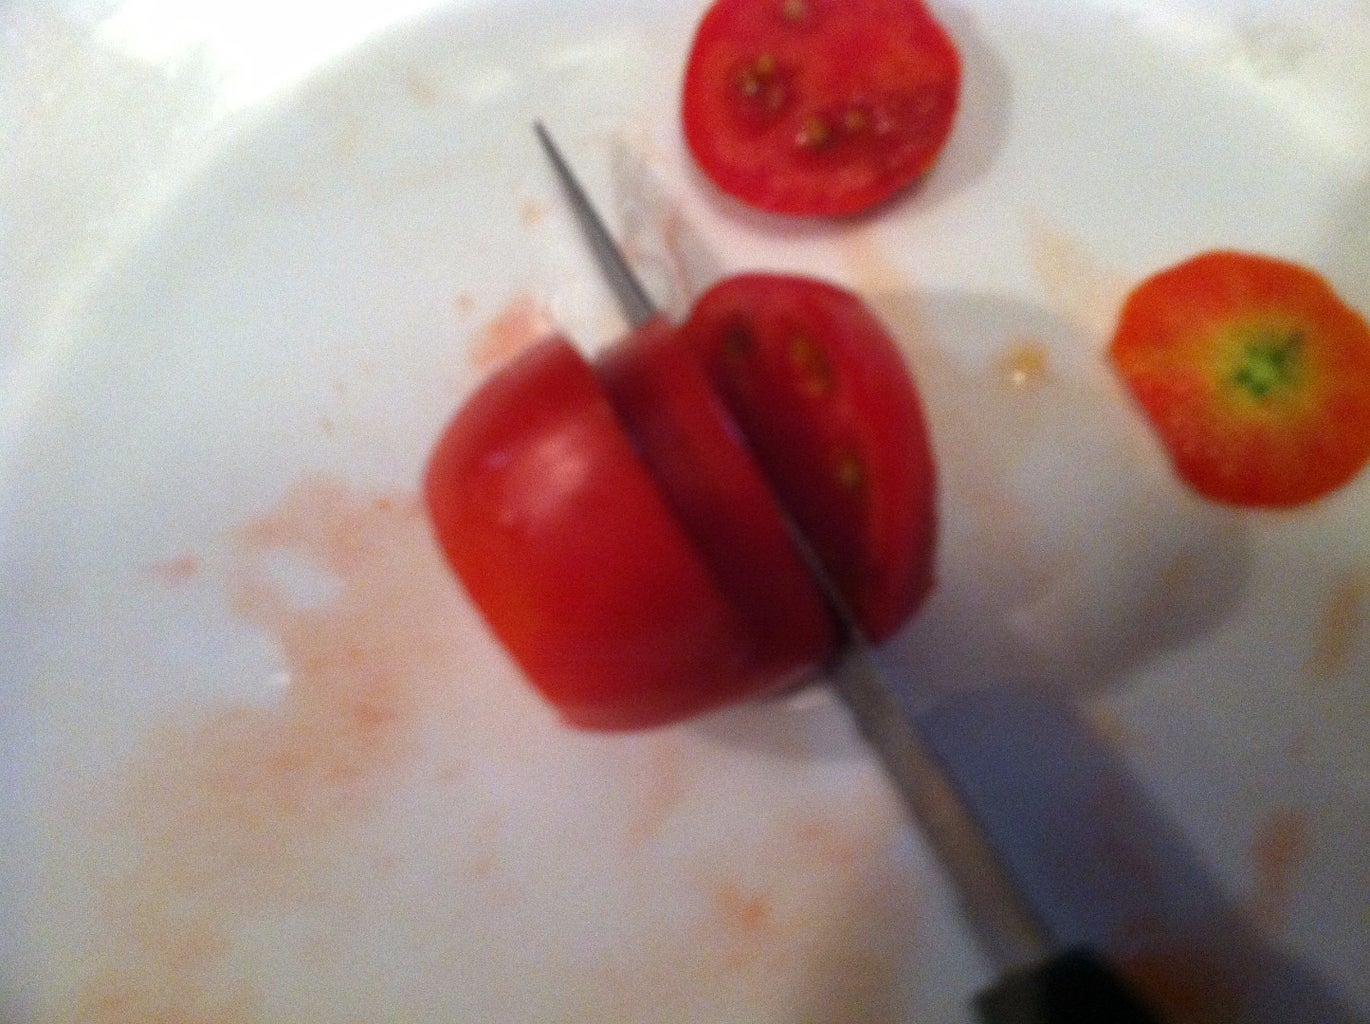 Cut the Tomato Into 4 Connected Pieces